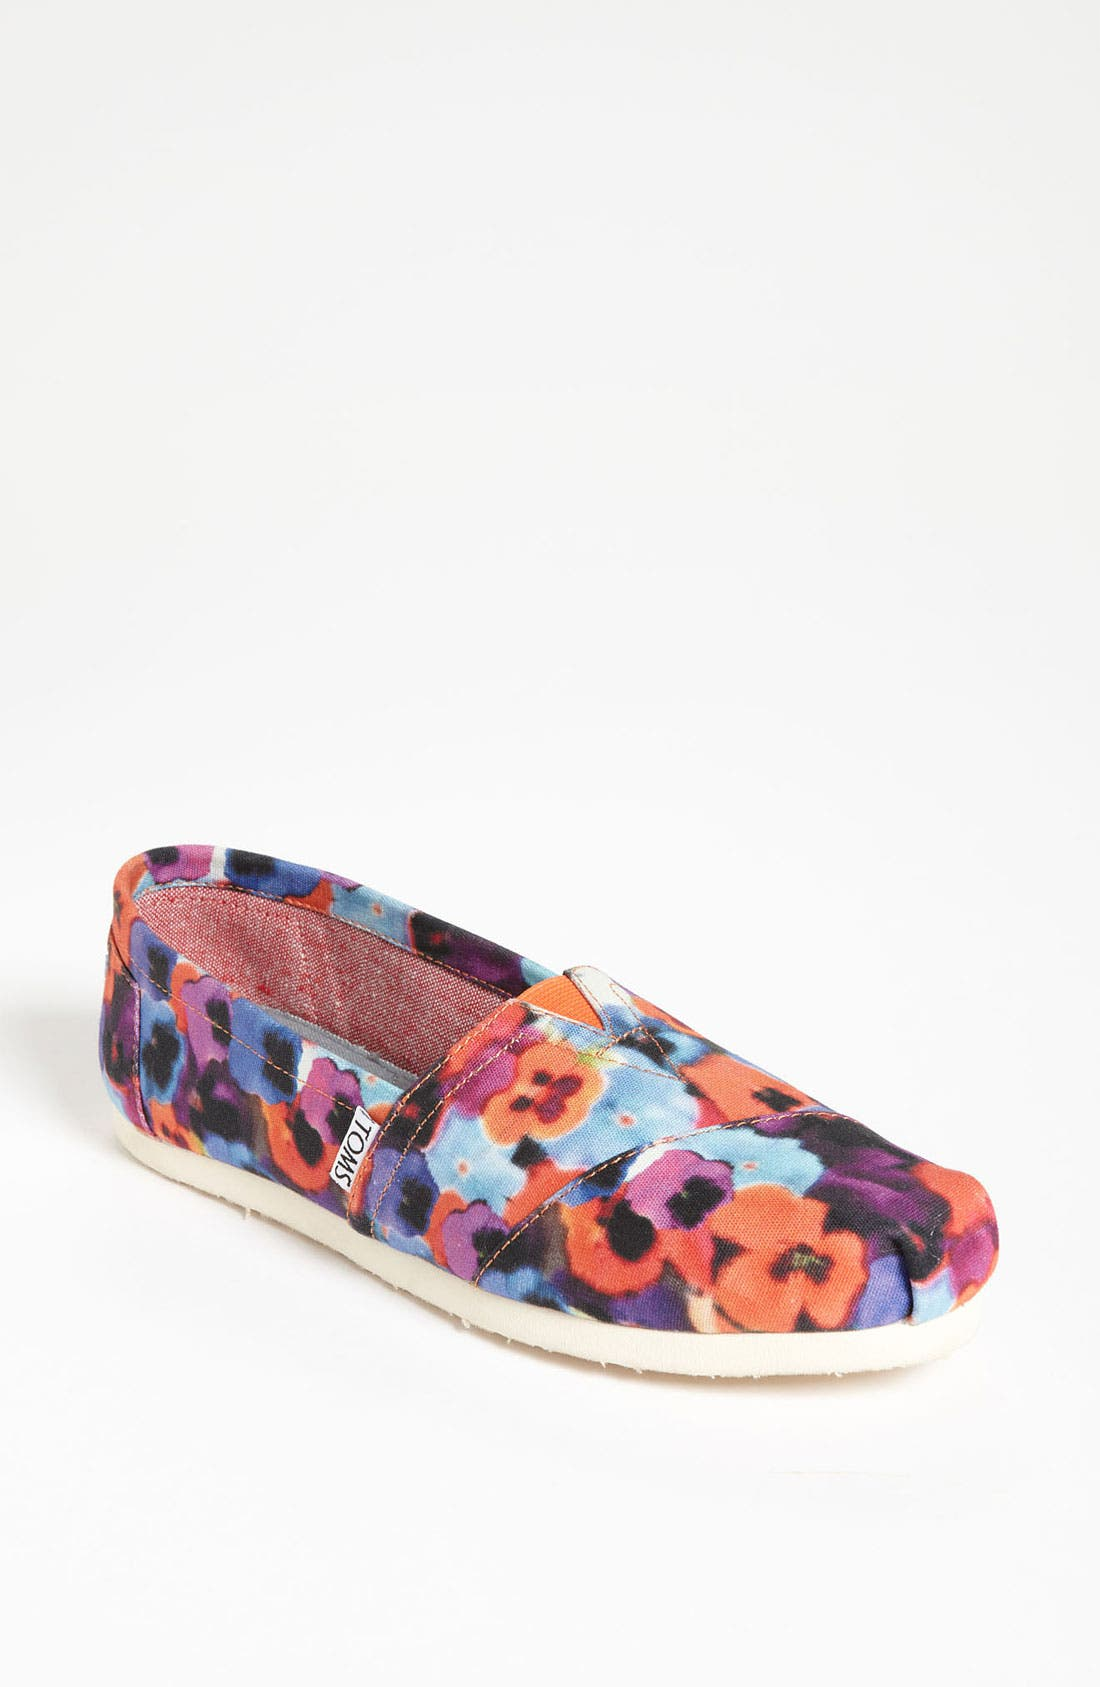 Alternate Image 1 Selected - TOMS 'Classic - Oahu' Slip-On (Women)